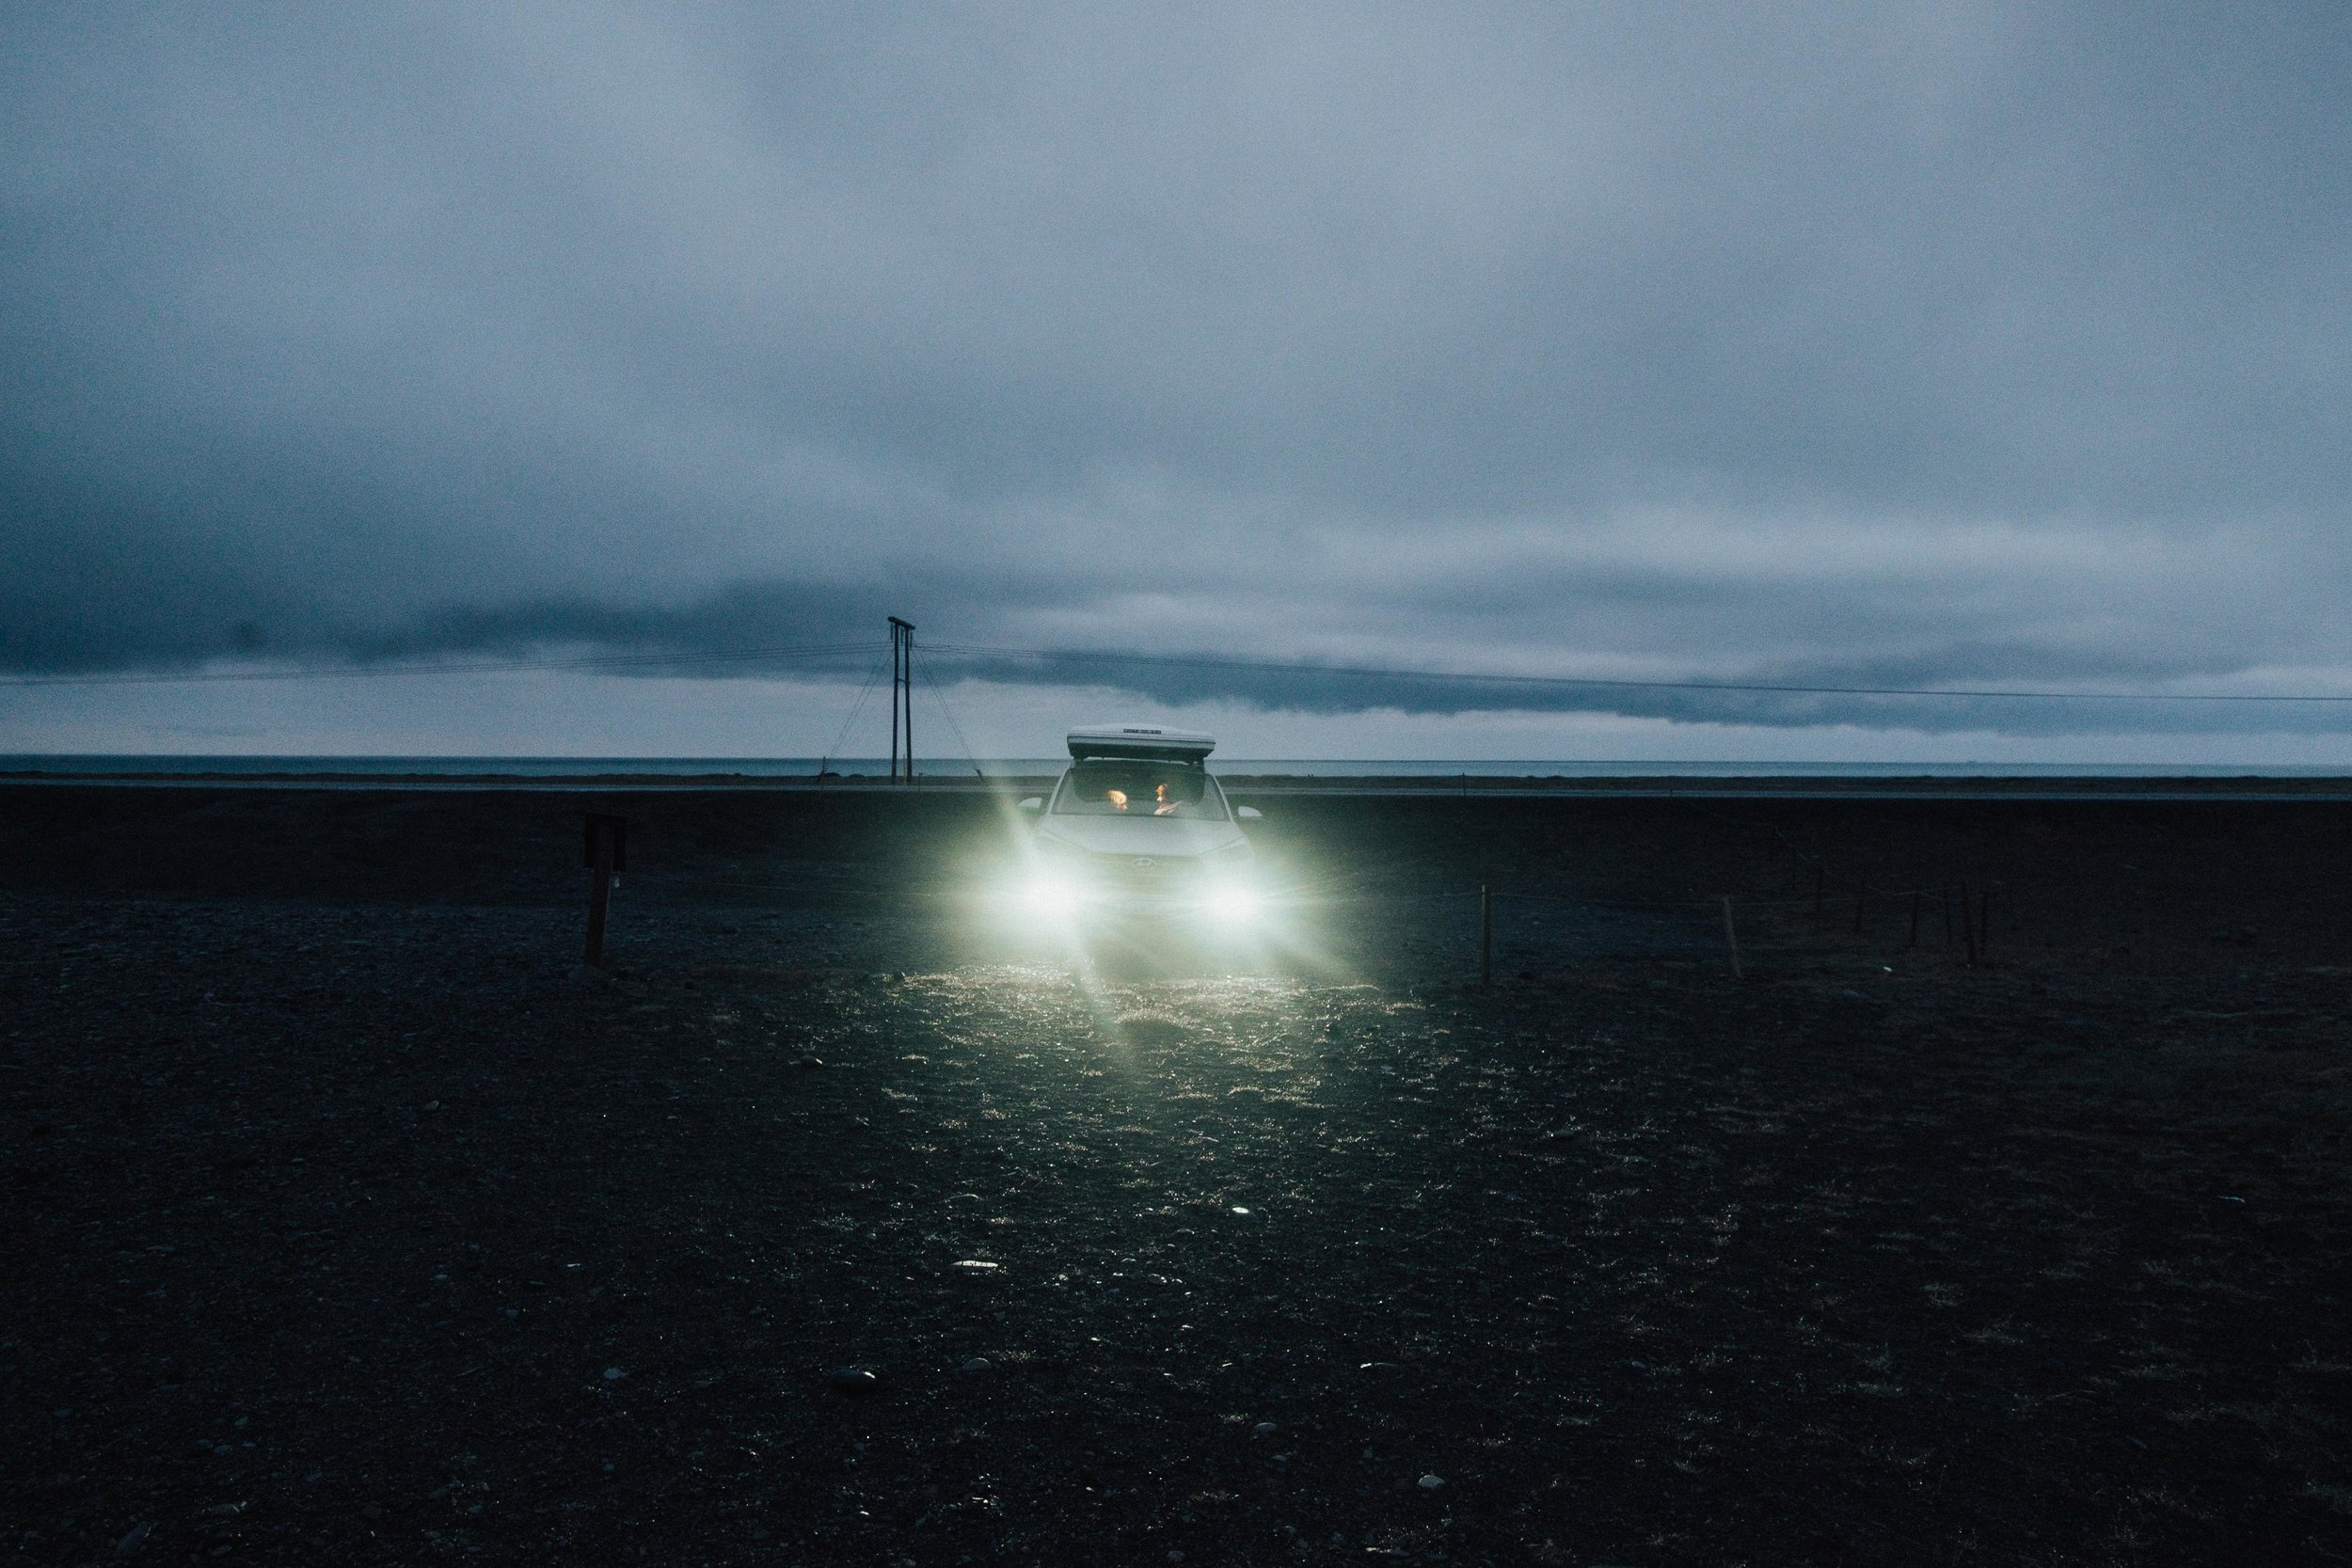 This was the darkest it ever got in Iceland and it was only because it was such heavy cloud cover.